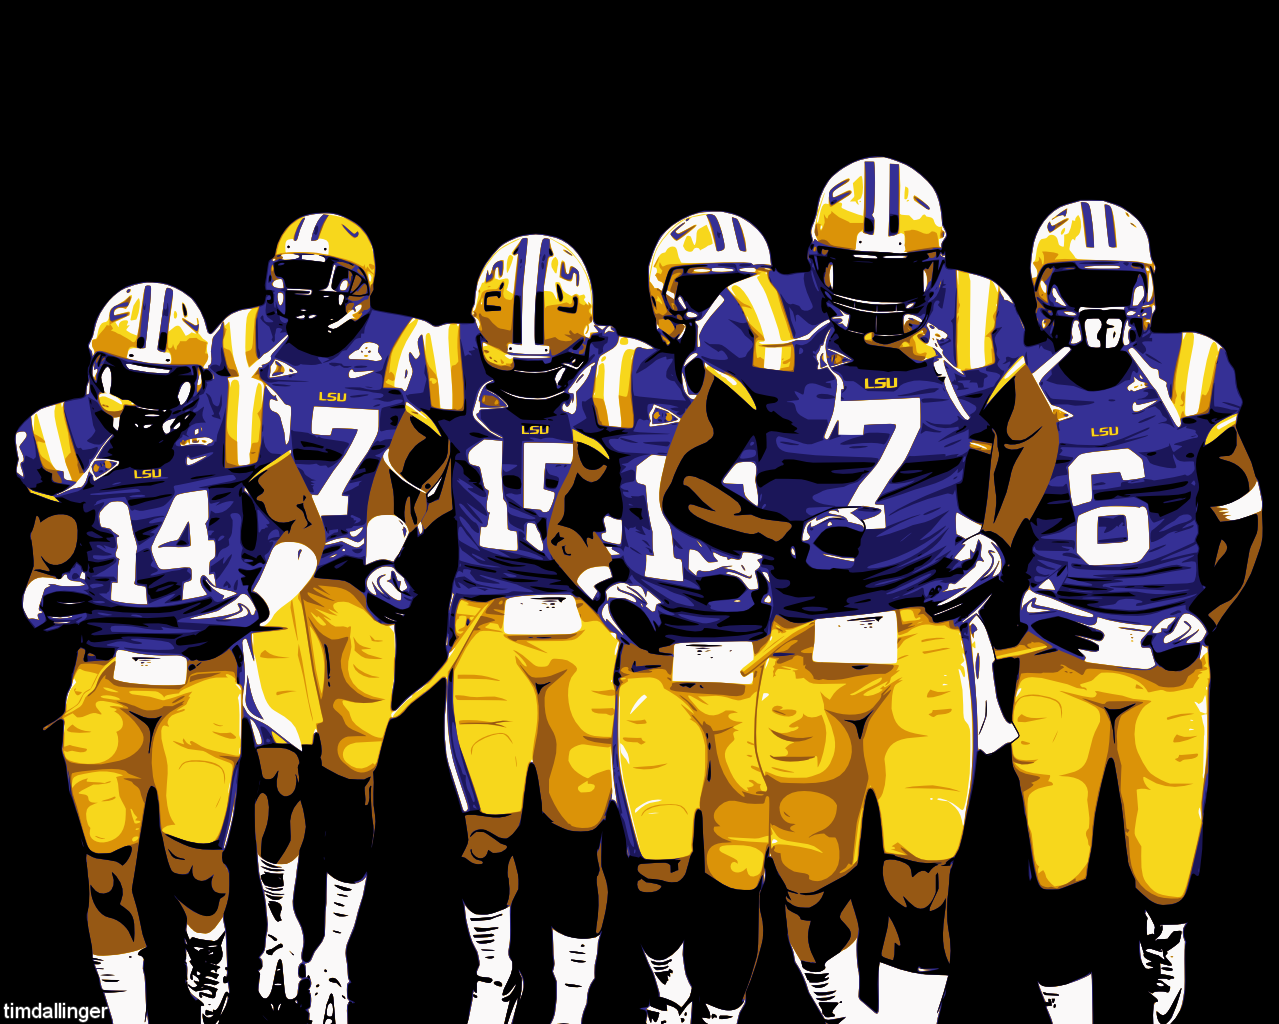 Pin By Keith Parker On Operationsports Com Lsu Lsu Football Lsu Fans